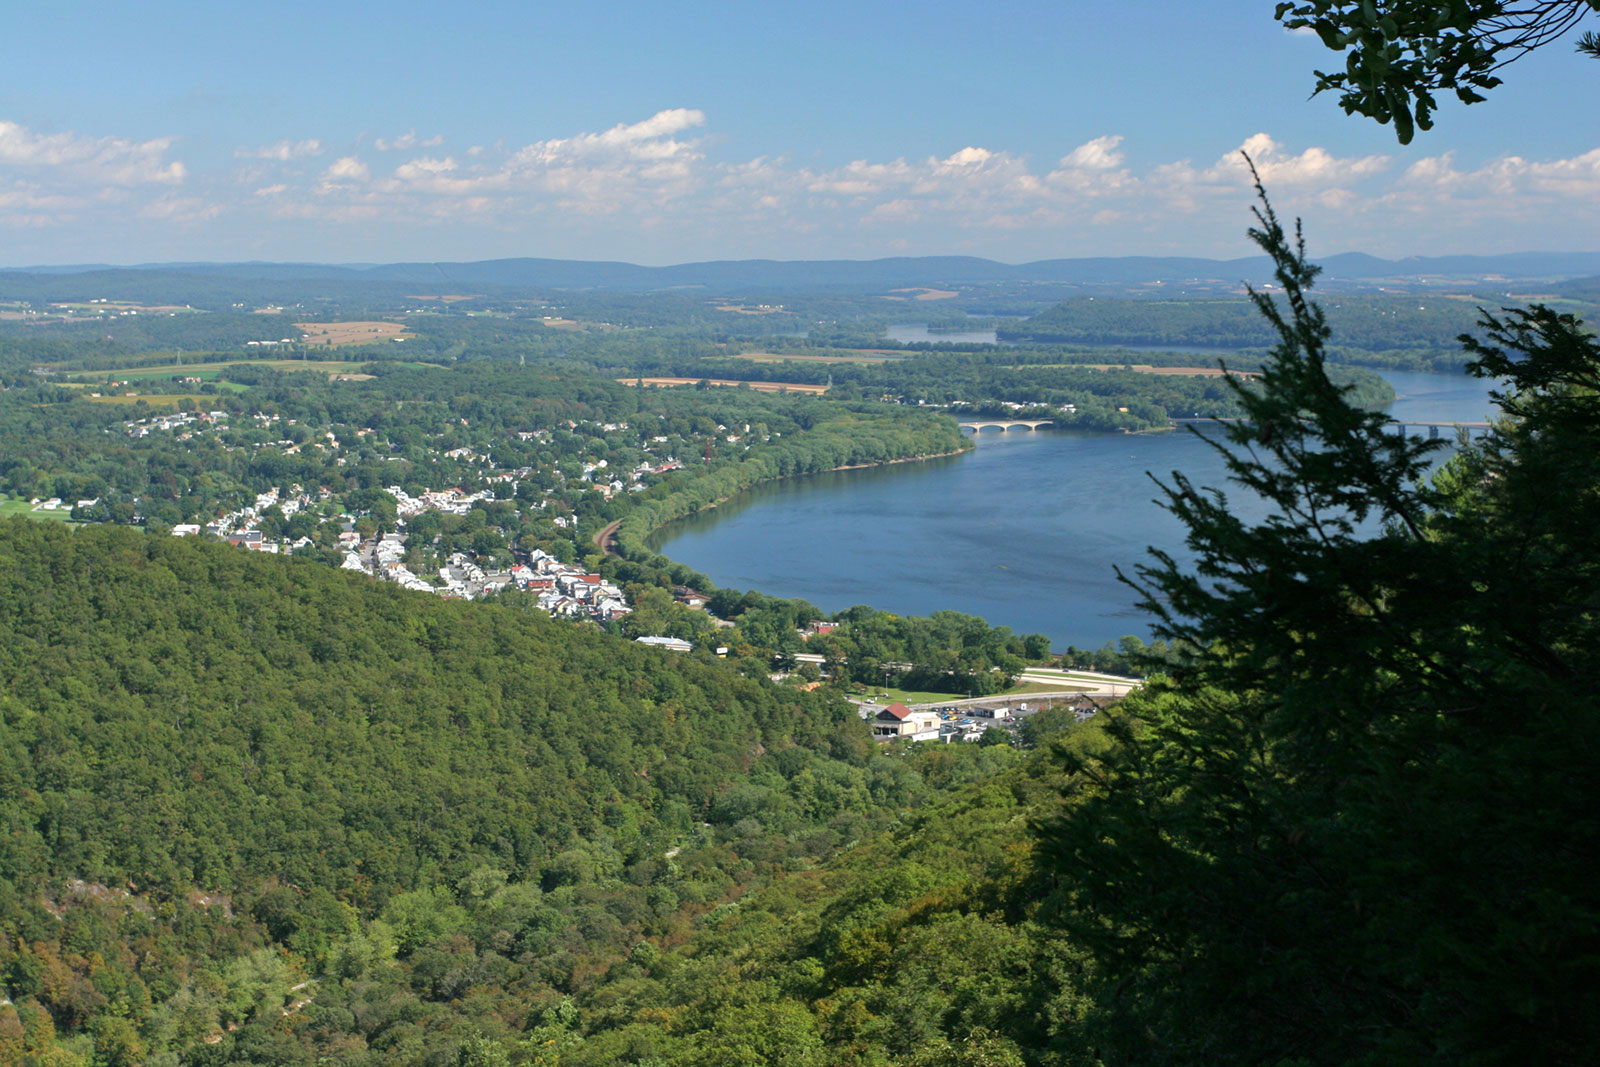 The image shows a landscape scene in the Appalachian region of Pennsylvania overlooking a quaint town dotted with white houses. A river cuts into the landscape below mountain ridge that is covered in green trees. A railroad track runs along the river. In the distance another mountain ridge stands below a blue sky with white clouds. The scene if framed to the right by out of focus pine trees in the foreground.